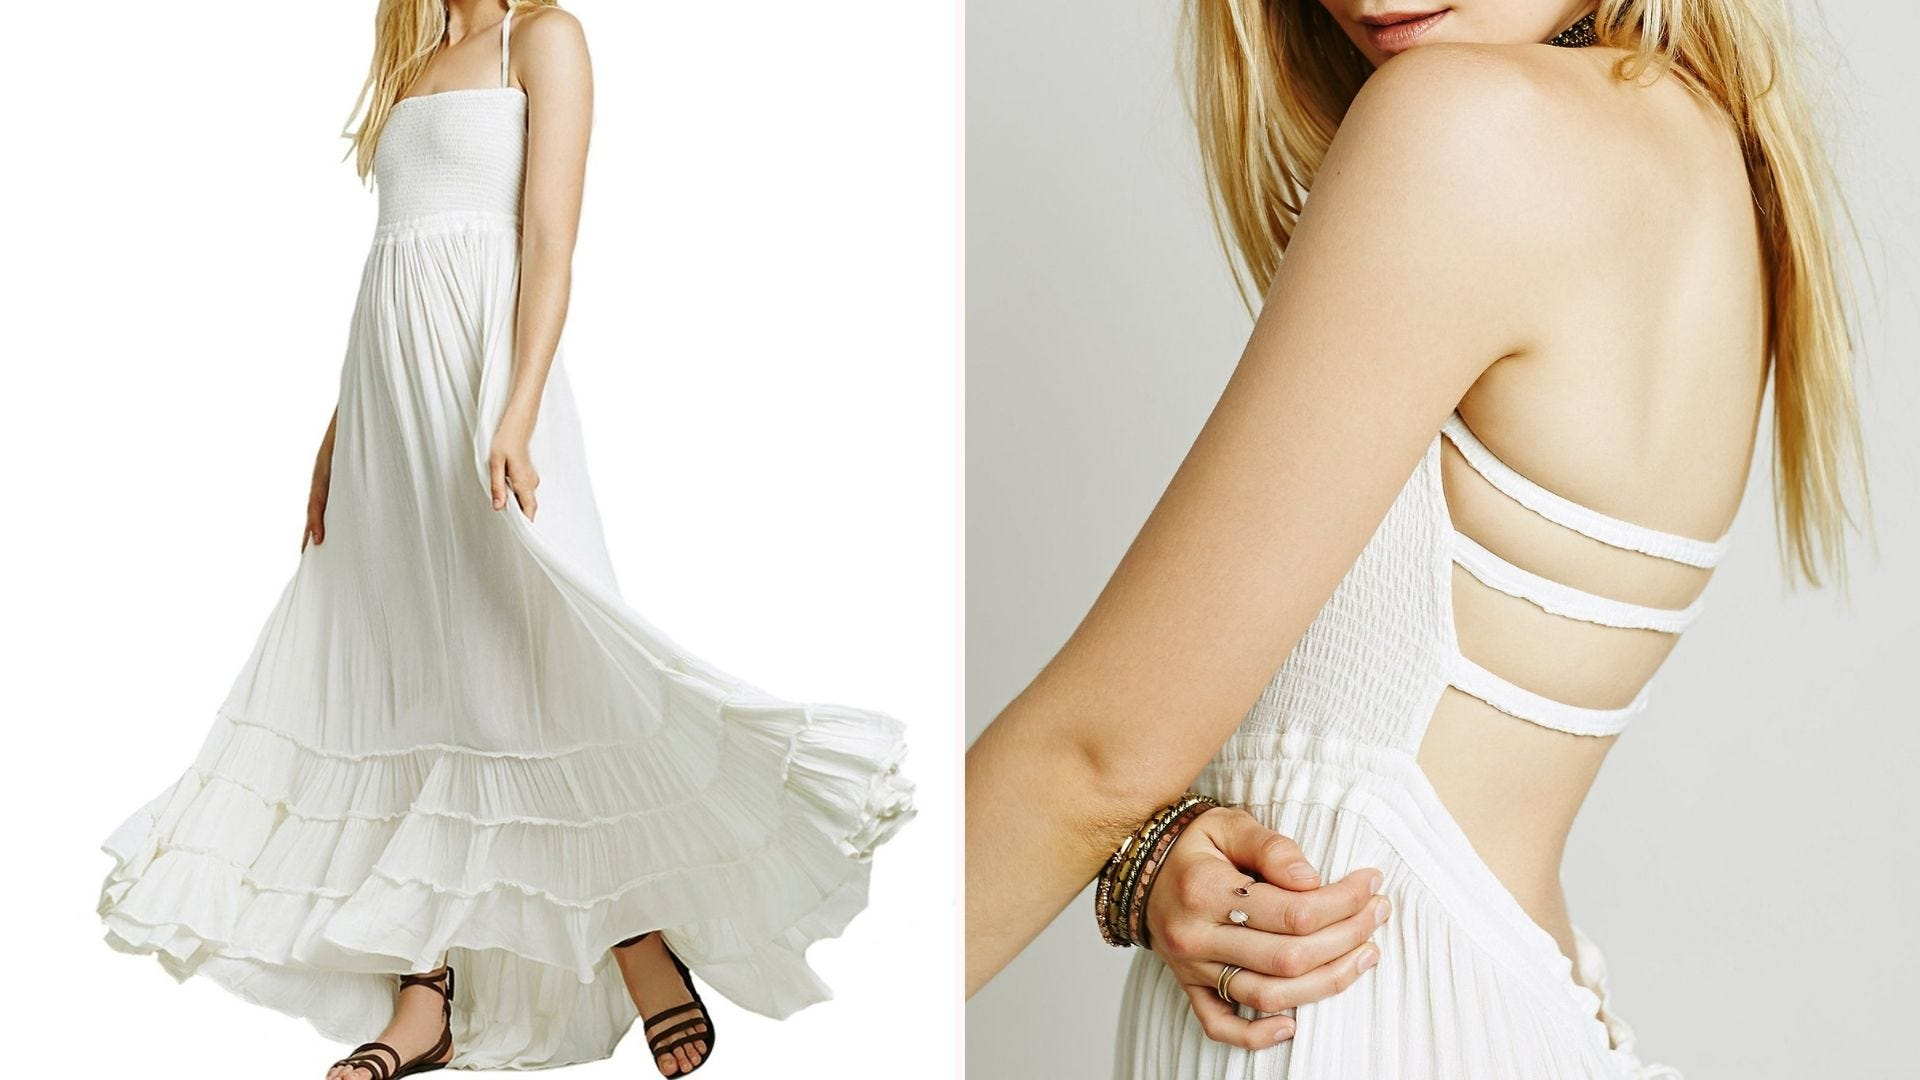 Front and side view of a woman wearing a backless white maxi dress